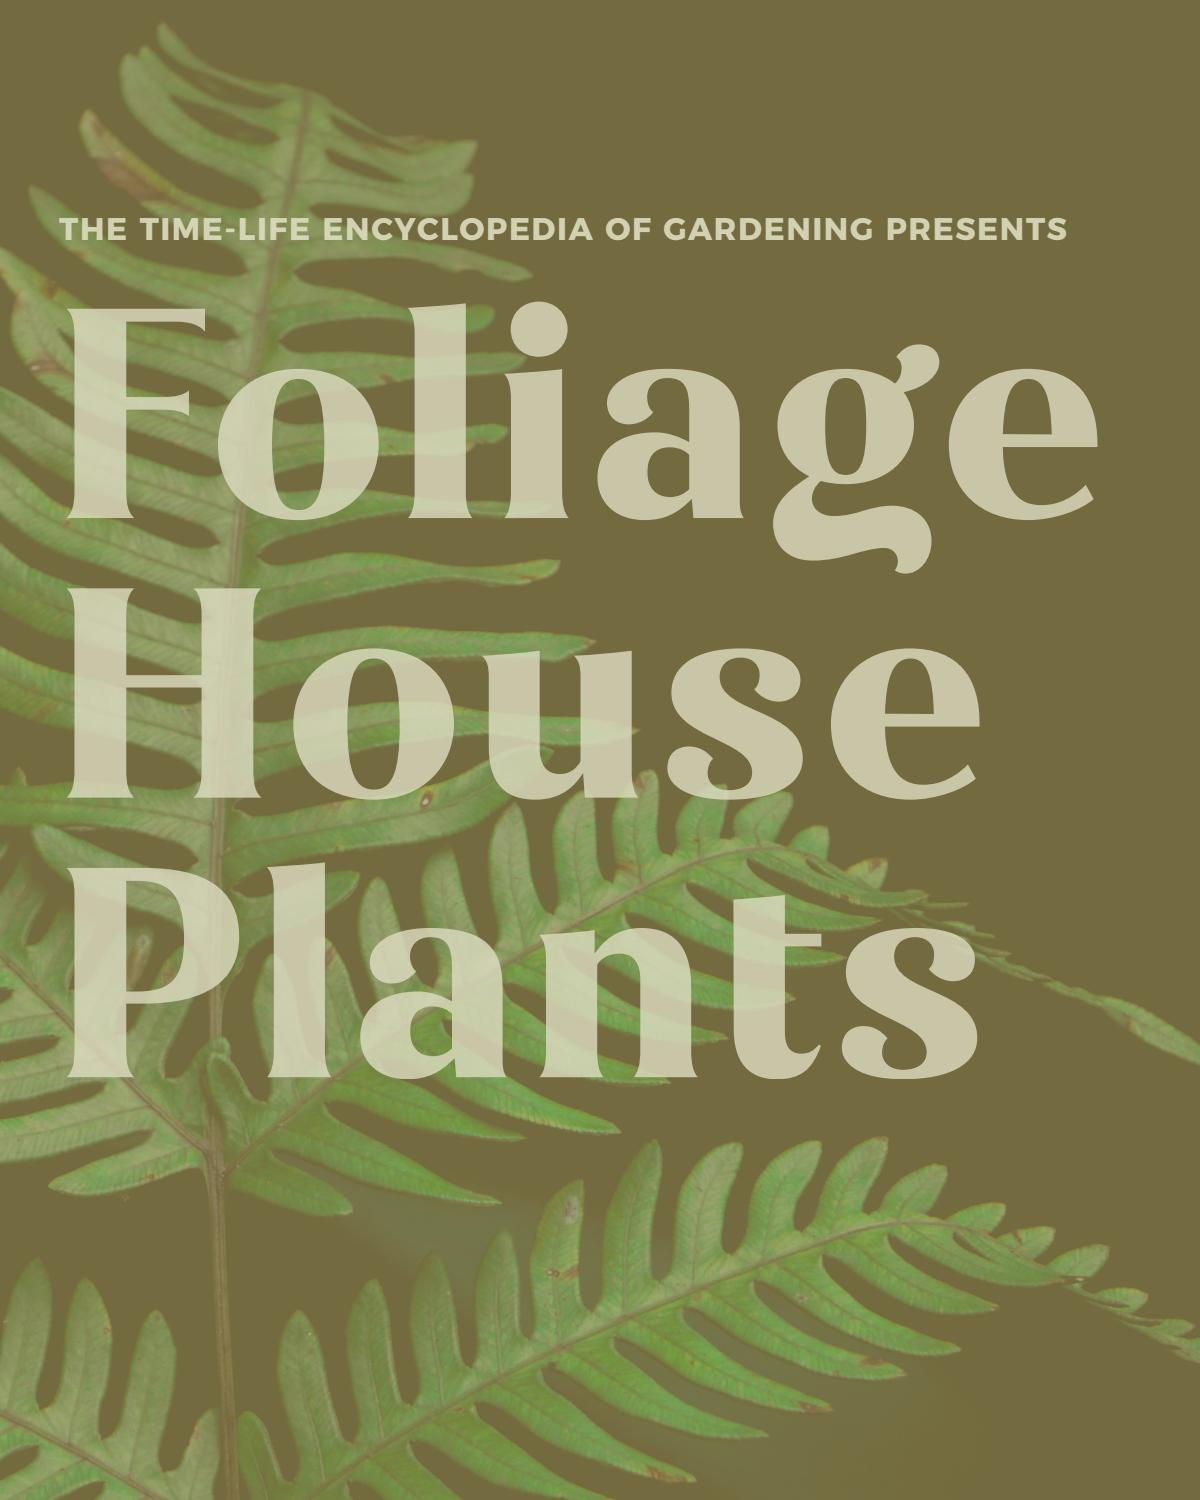 Foliage House Plants Time Life Book by Heather Strudgeon - issuu on